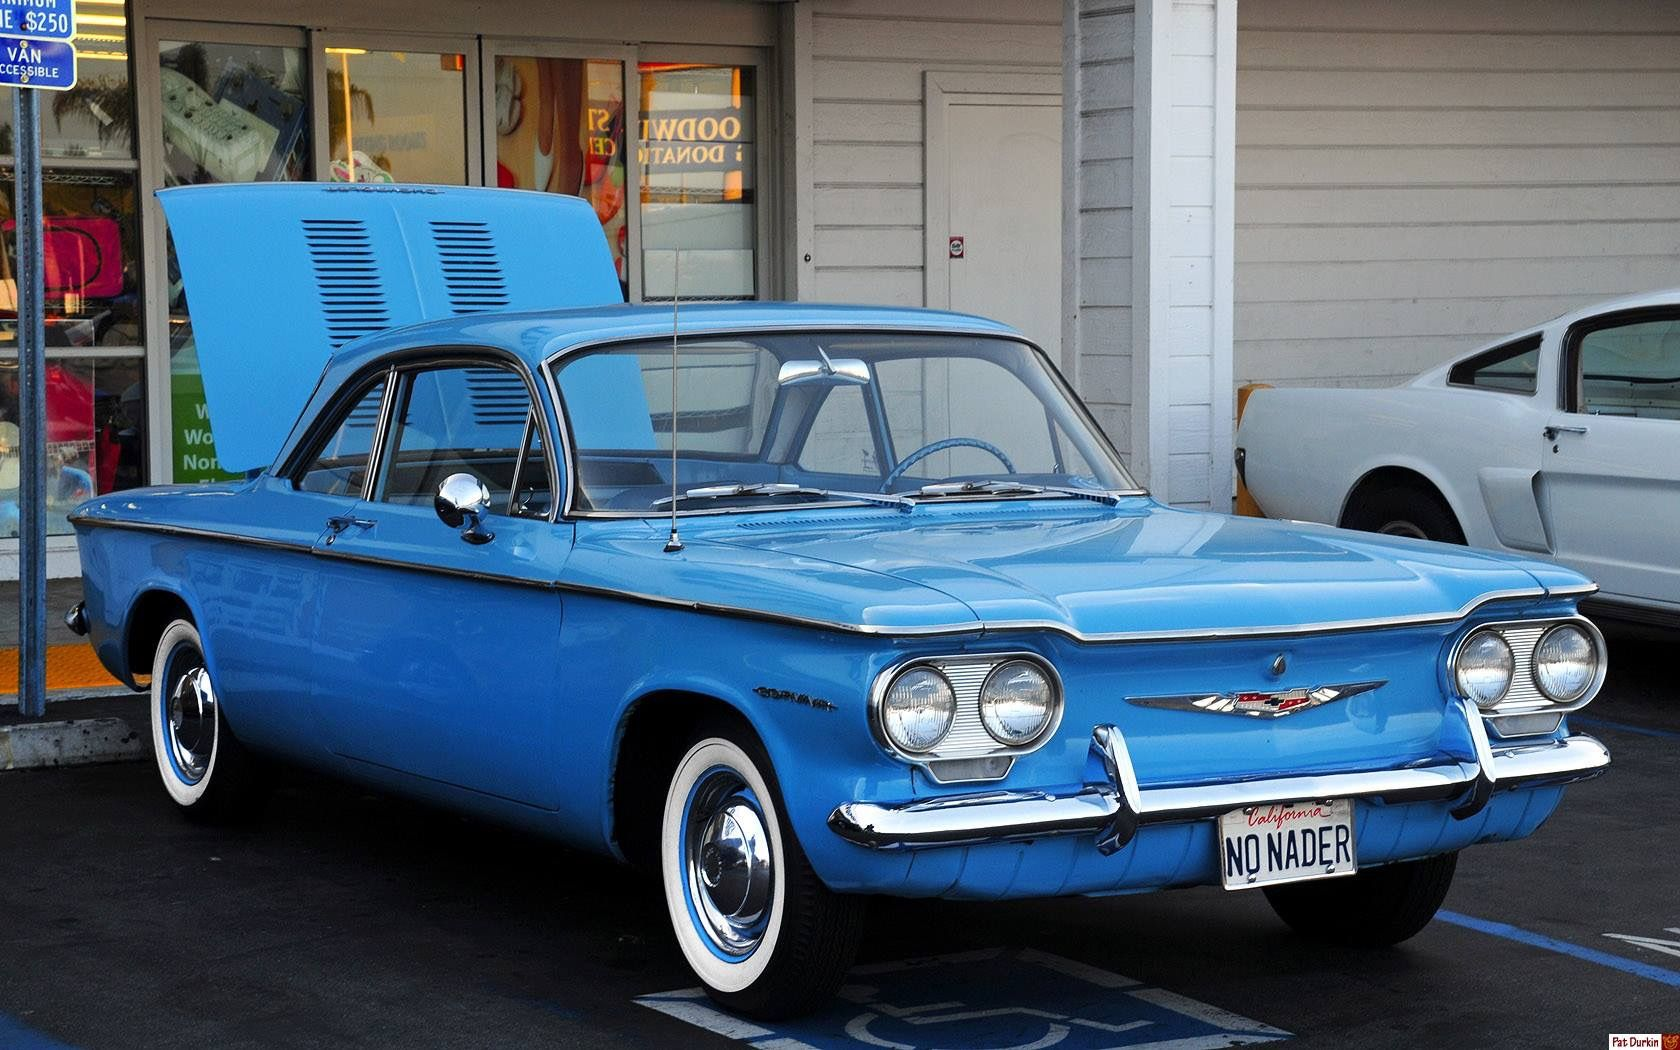 1960 chevrolet corvair 700 club coupe this was my first car the trunk is in the front pictures pinterest chevrolet coupe and cars